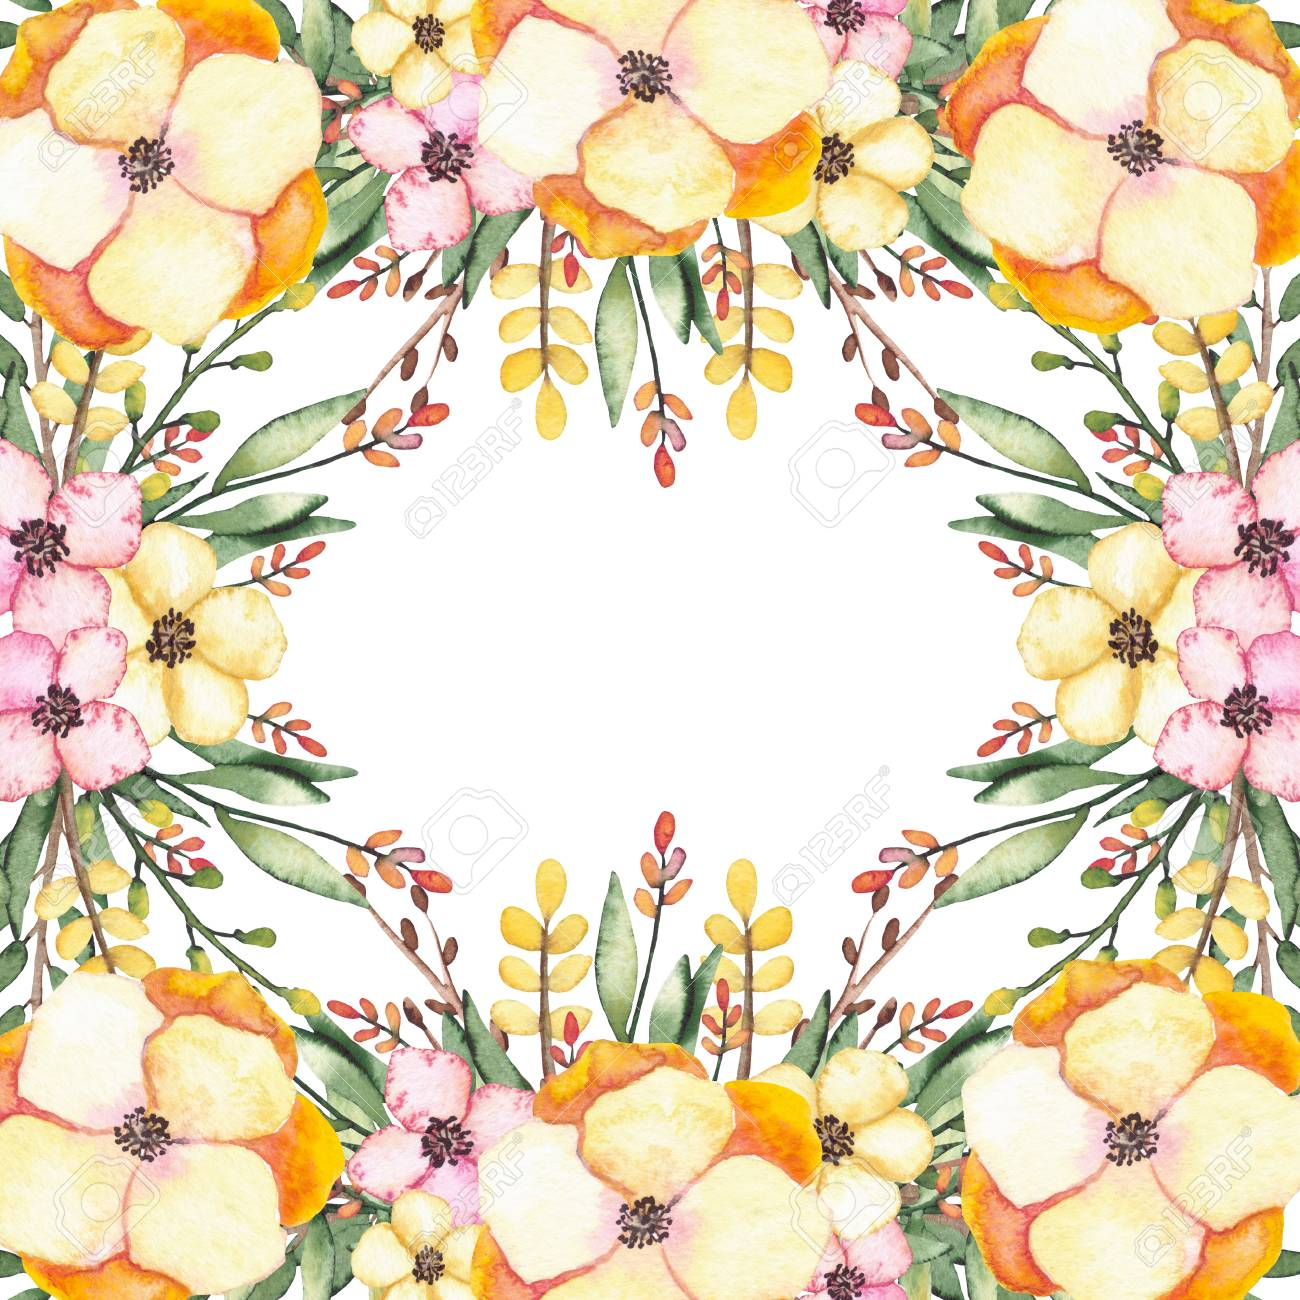 Square Frame With Watercolor Yellow And Pink Flowers Herbs And